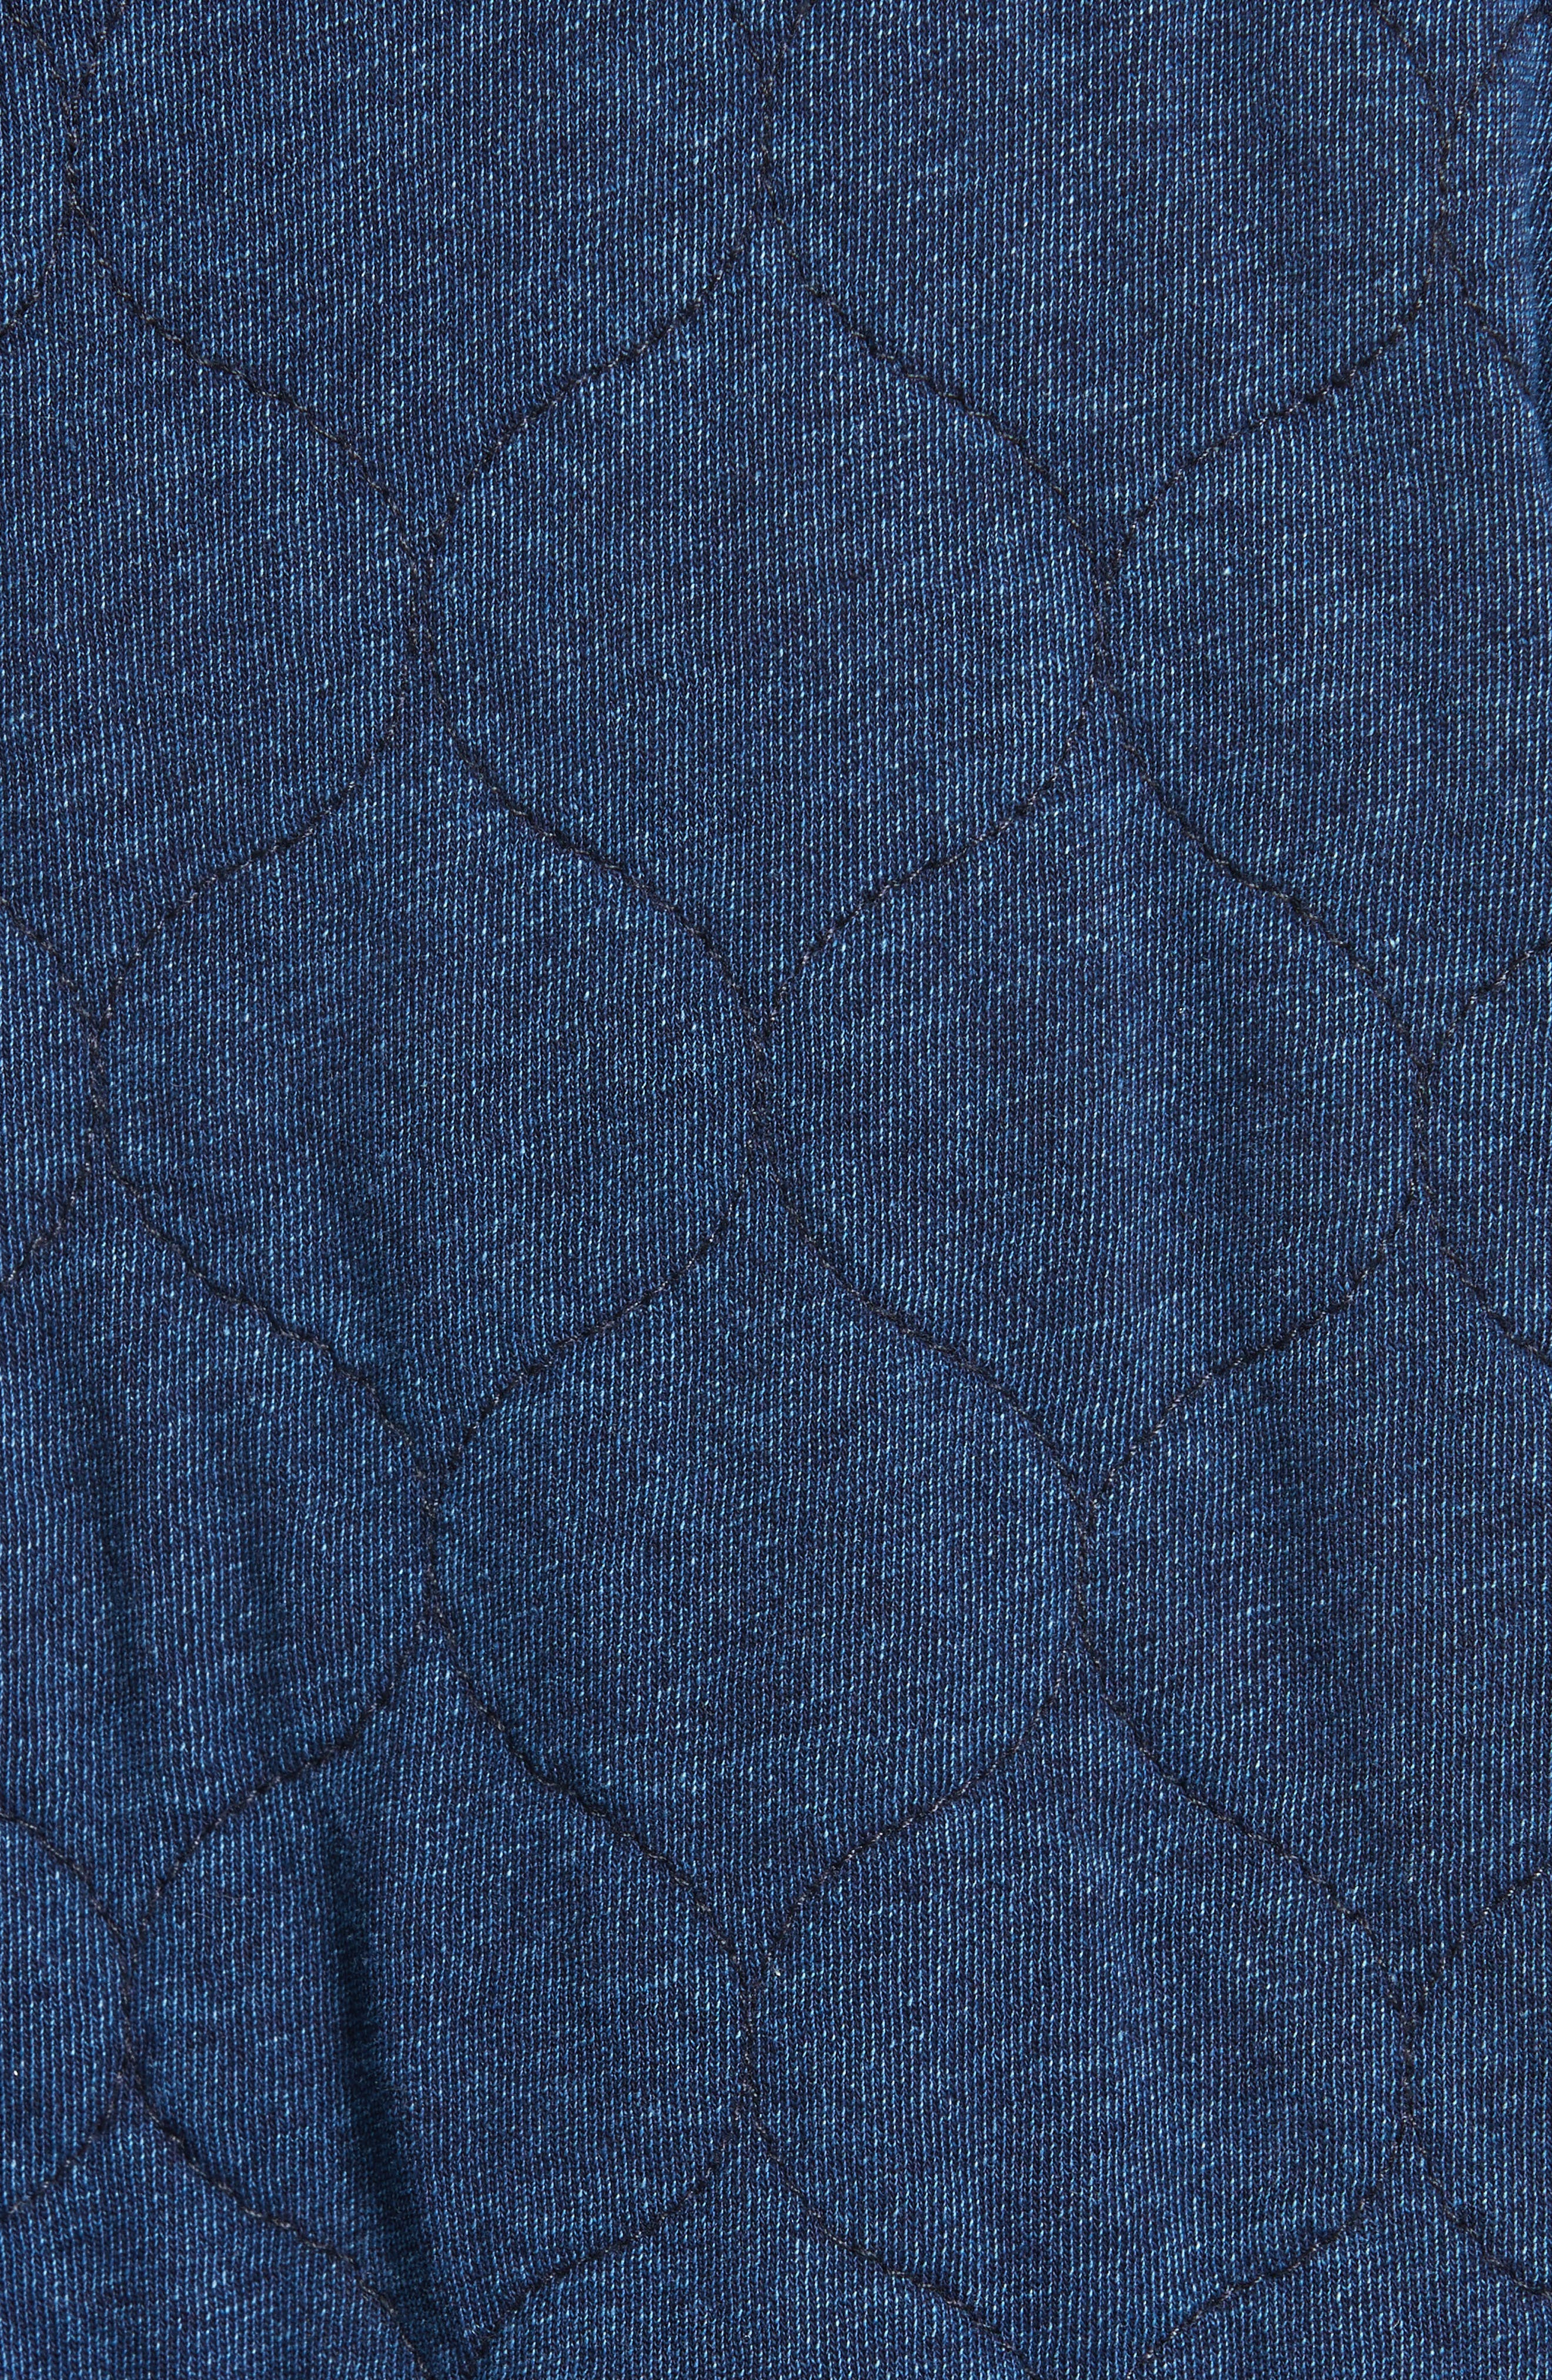 Quilted Liner Jacket,                             Alternate thumbnail 5, color,                             470